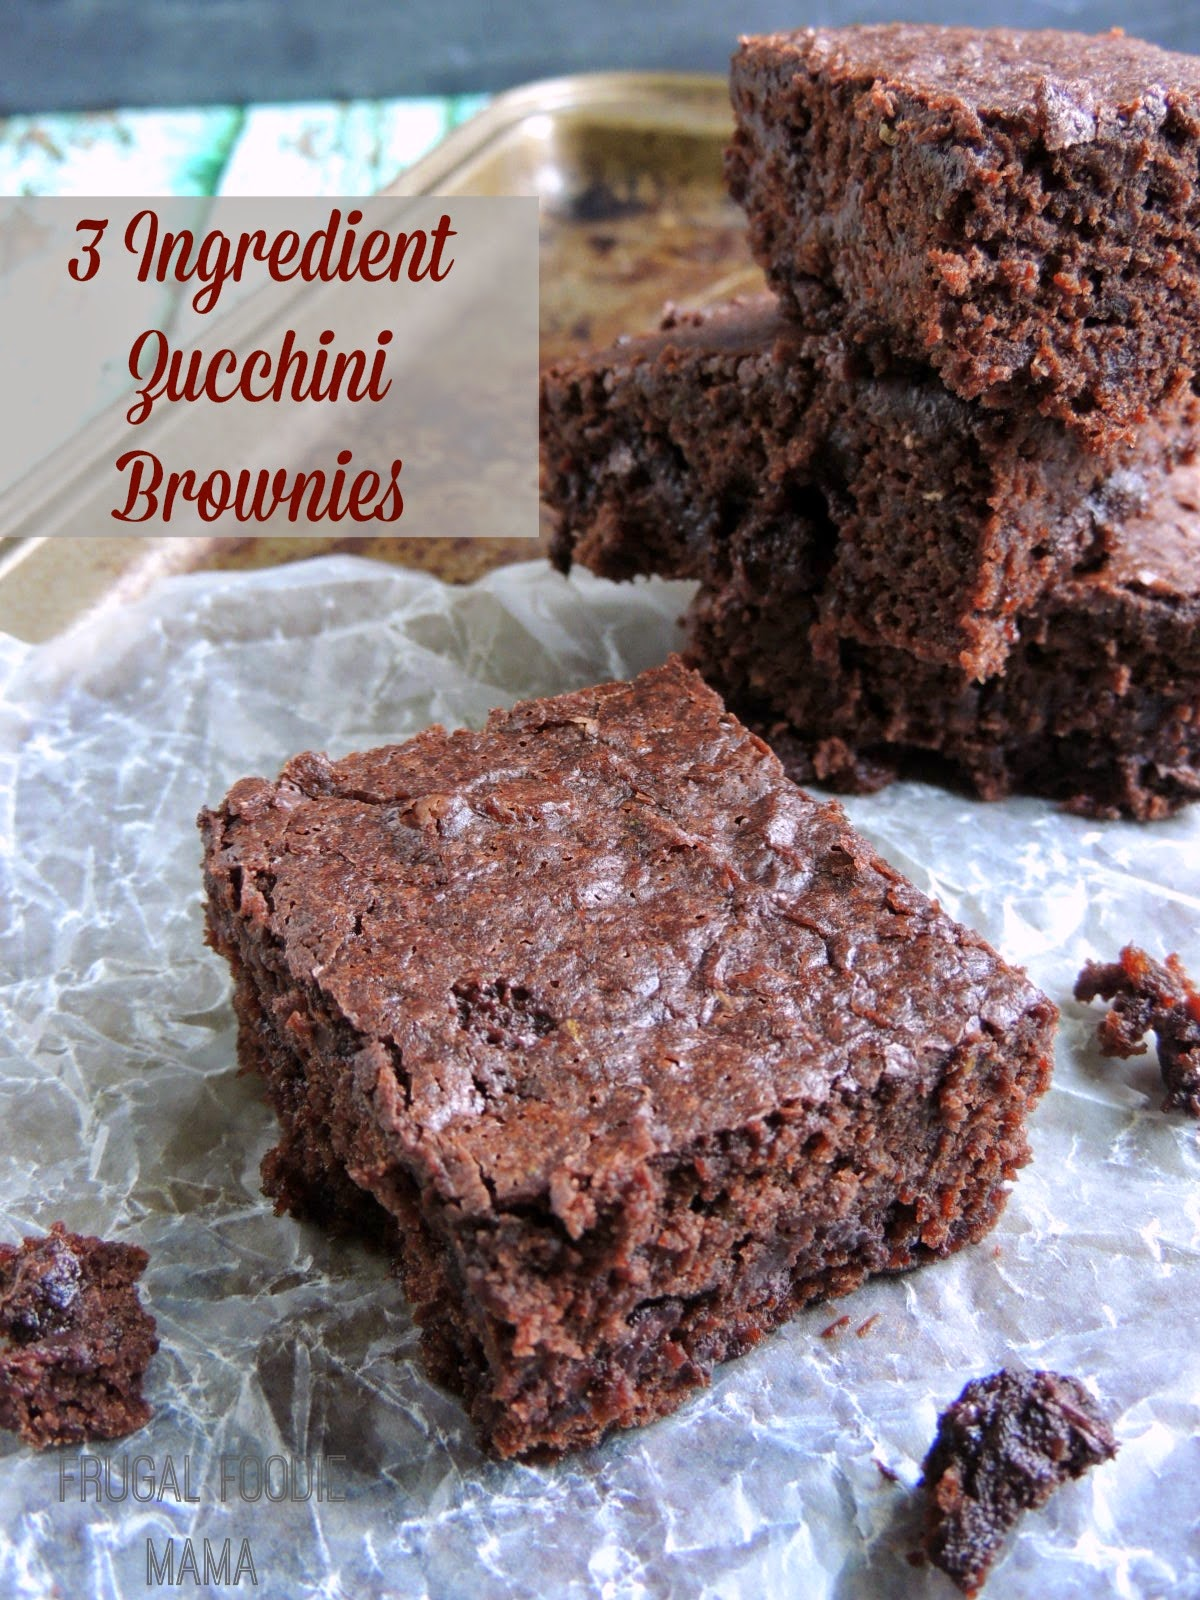 3 Ingredient Zucchini Brownies via thefrugalfoodiemama.com- these incredibly moist brownies are so easy to make, plus bonus hidden veggies!